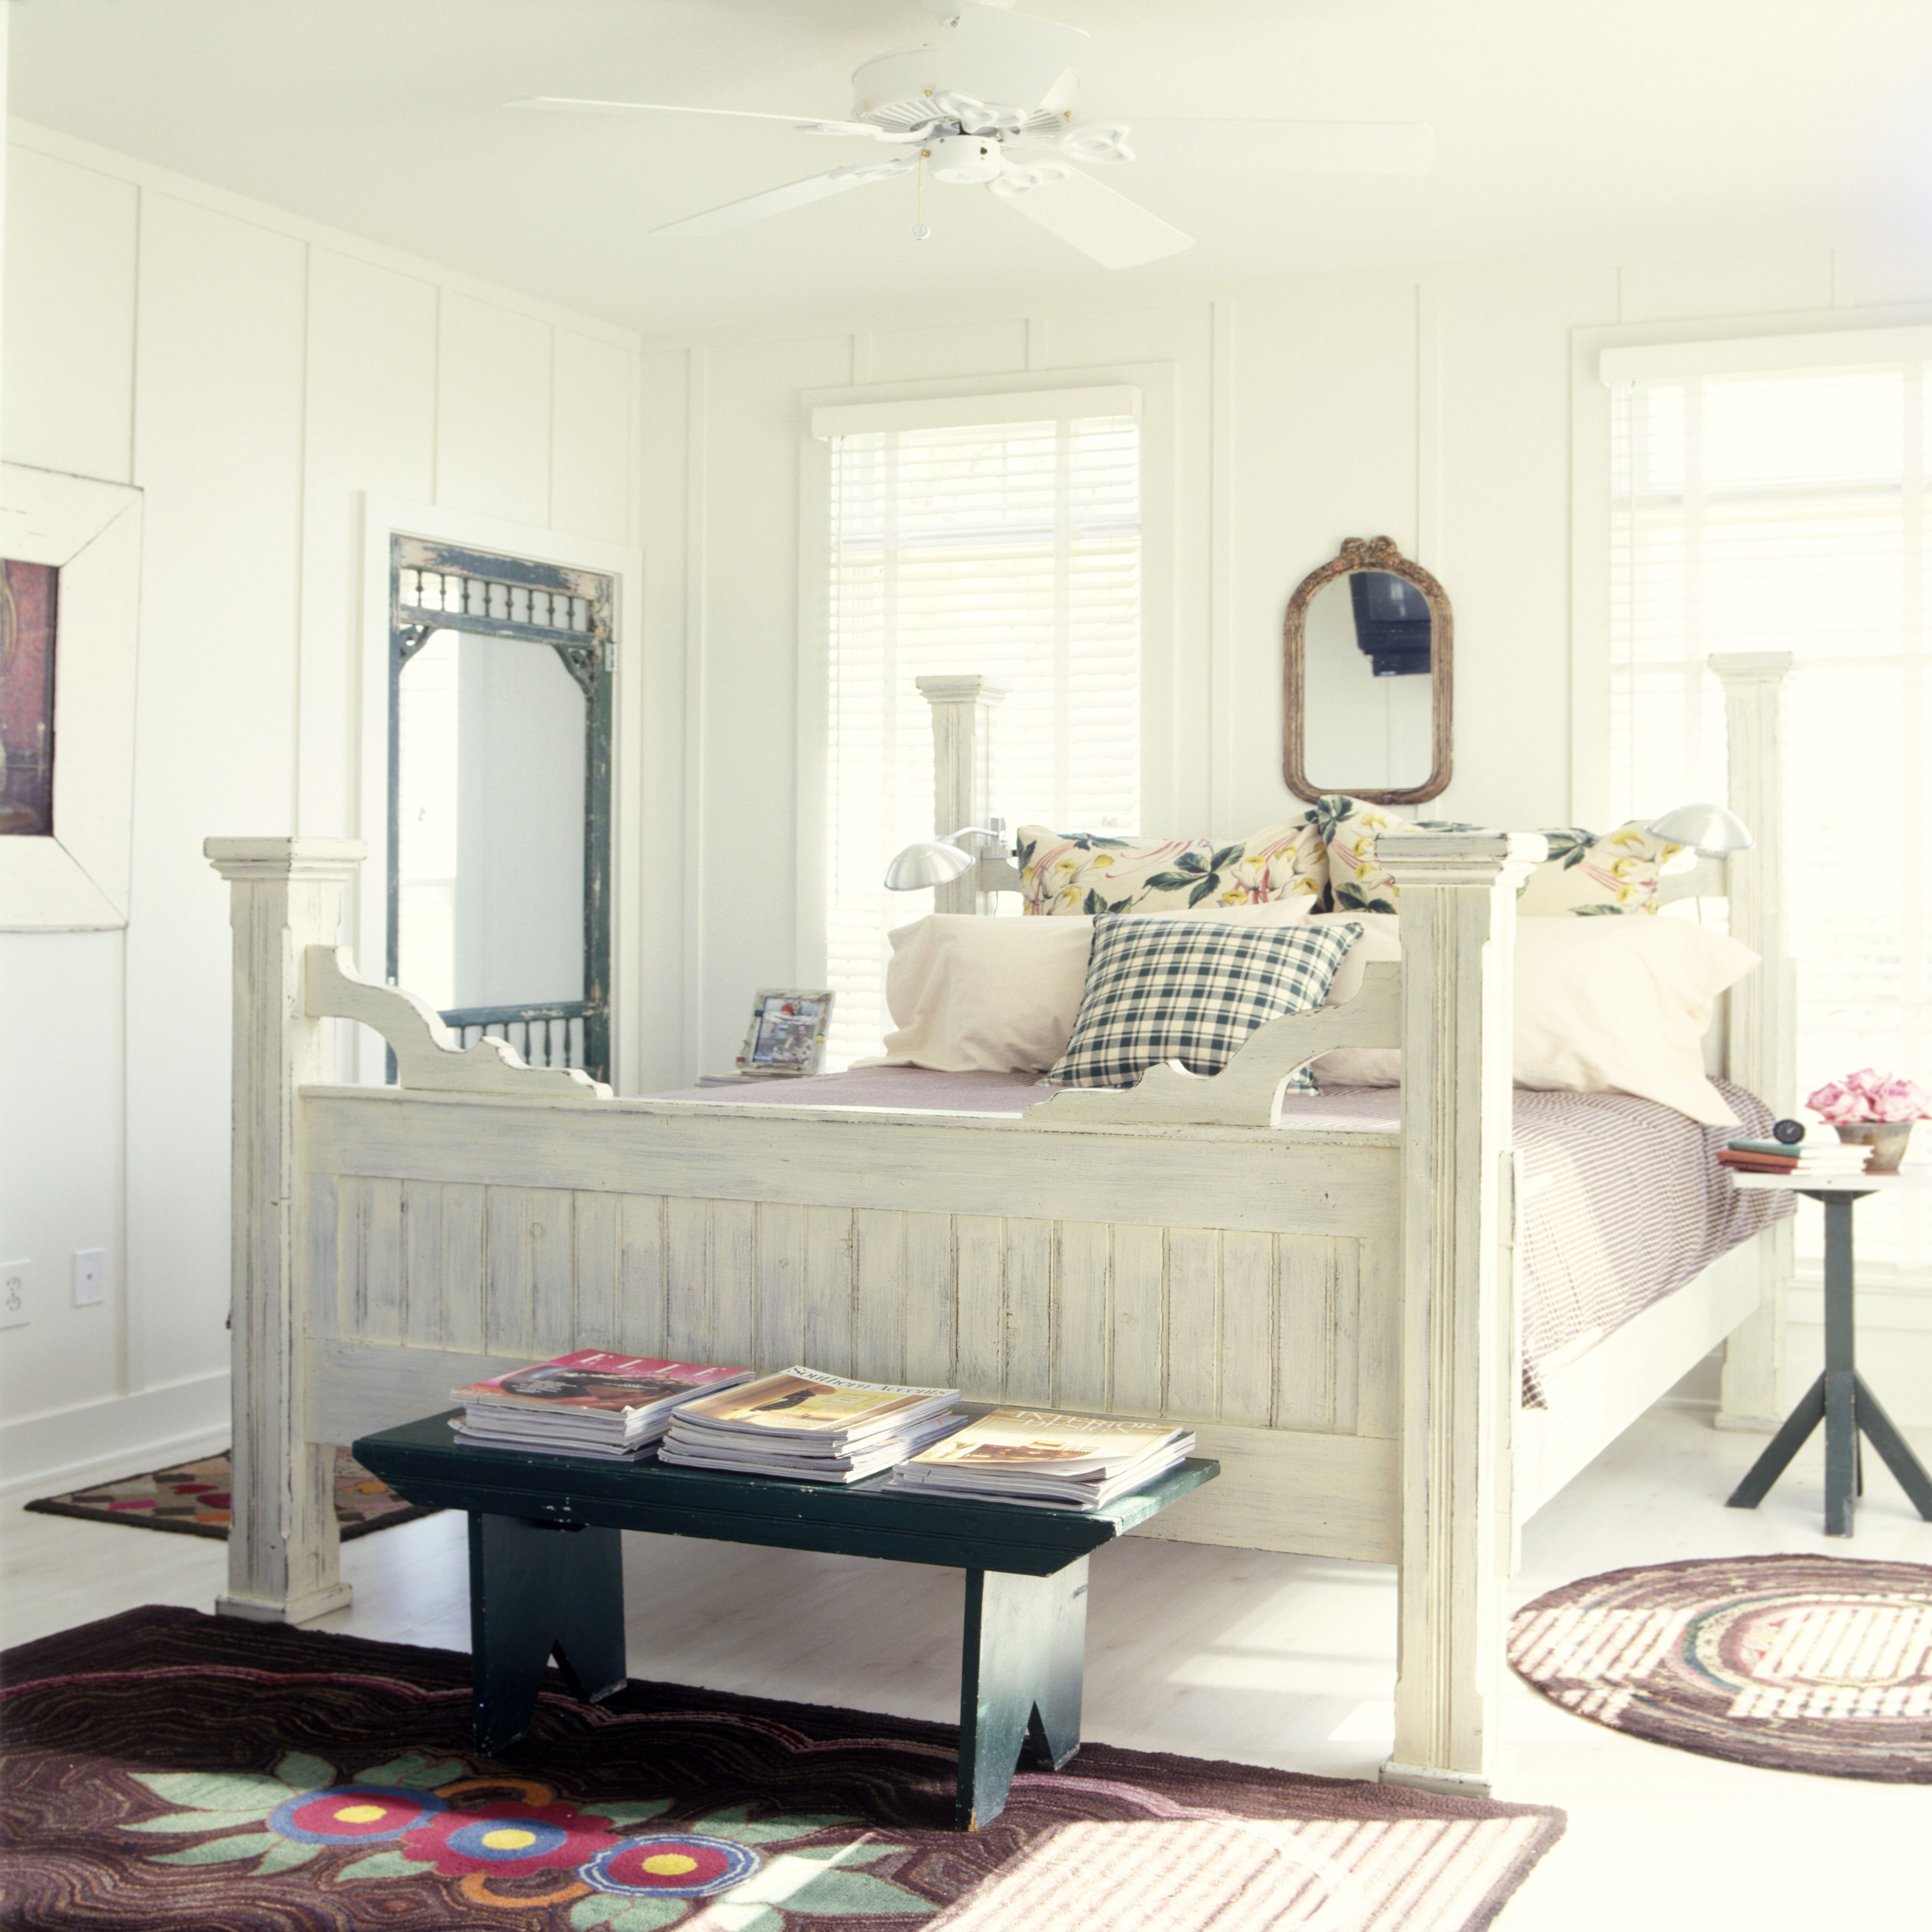 The Trend for Shabby Chic Continues